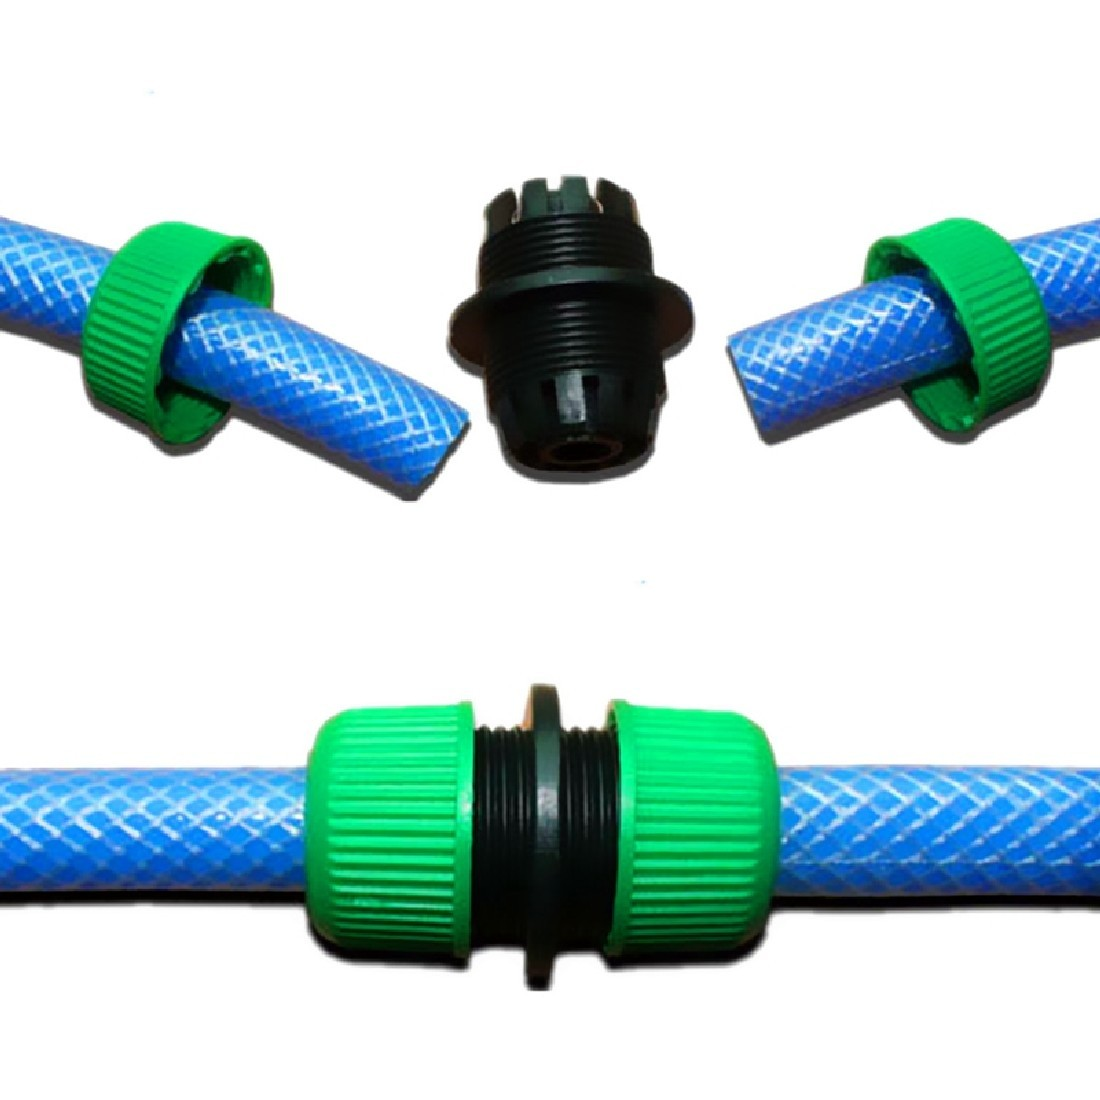 New 1/2 Garden Water Hose Connector Pipe Quick Connectors Joining Mender Repair Leaking Joiner Connector Adapter